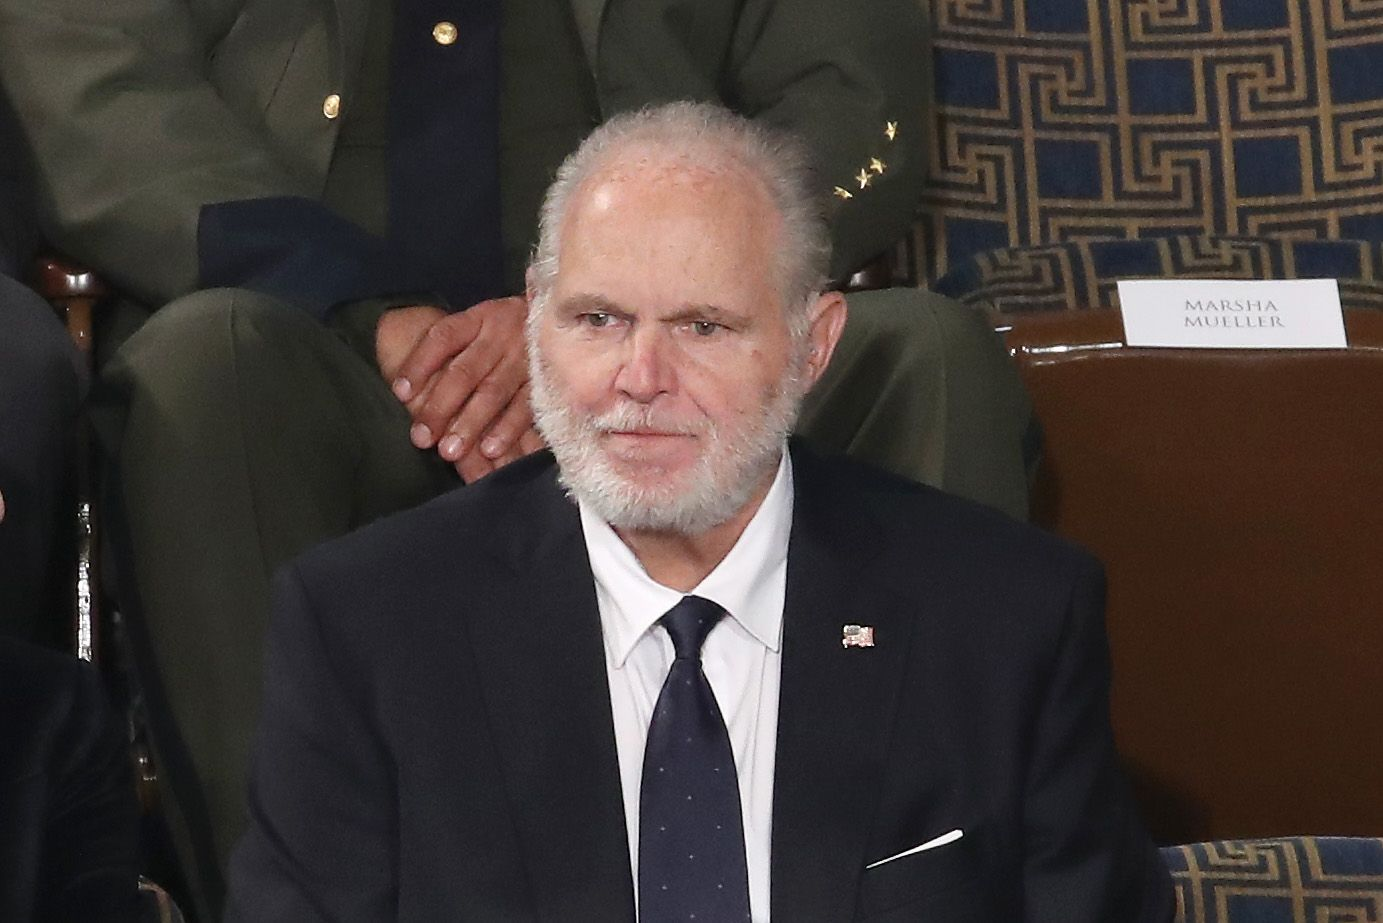 Rush Limbaugh sits in the First Lady's box ahead of the State of the Union address on February 04, 2020 | Getty Images